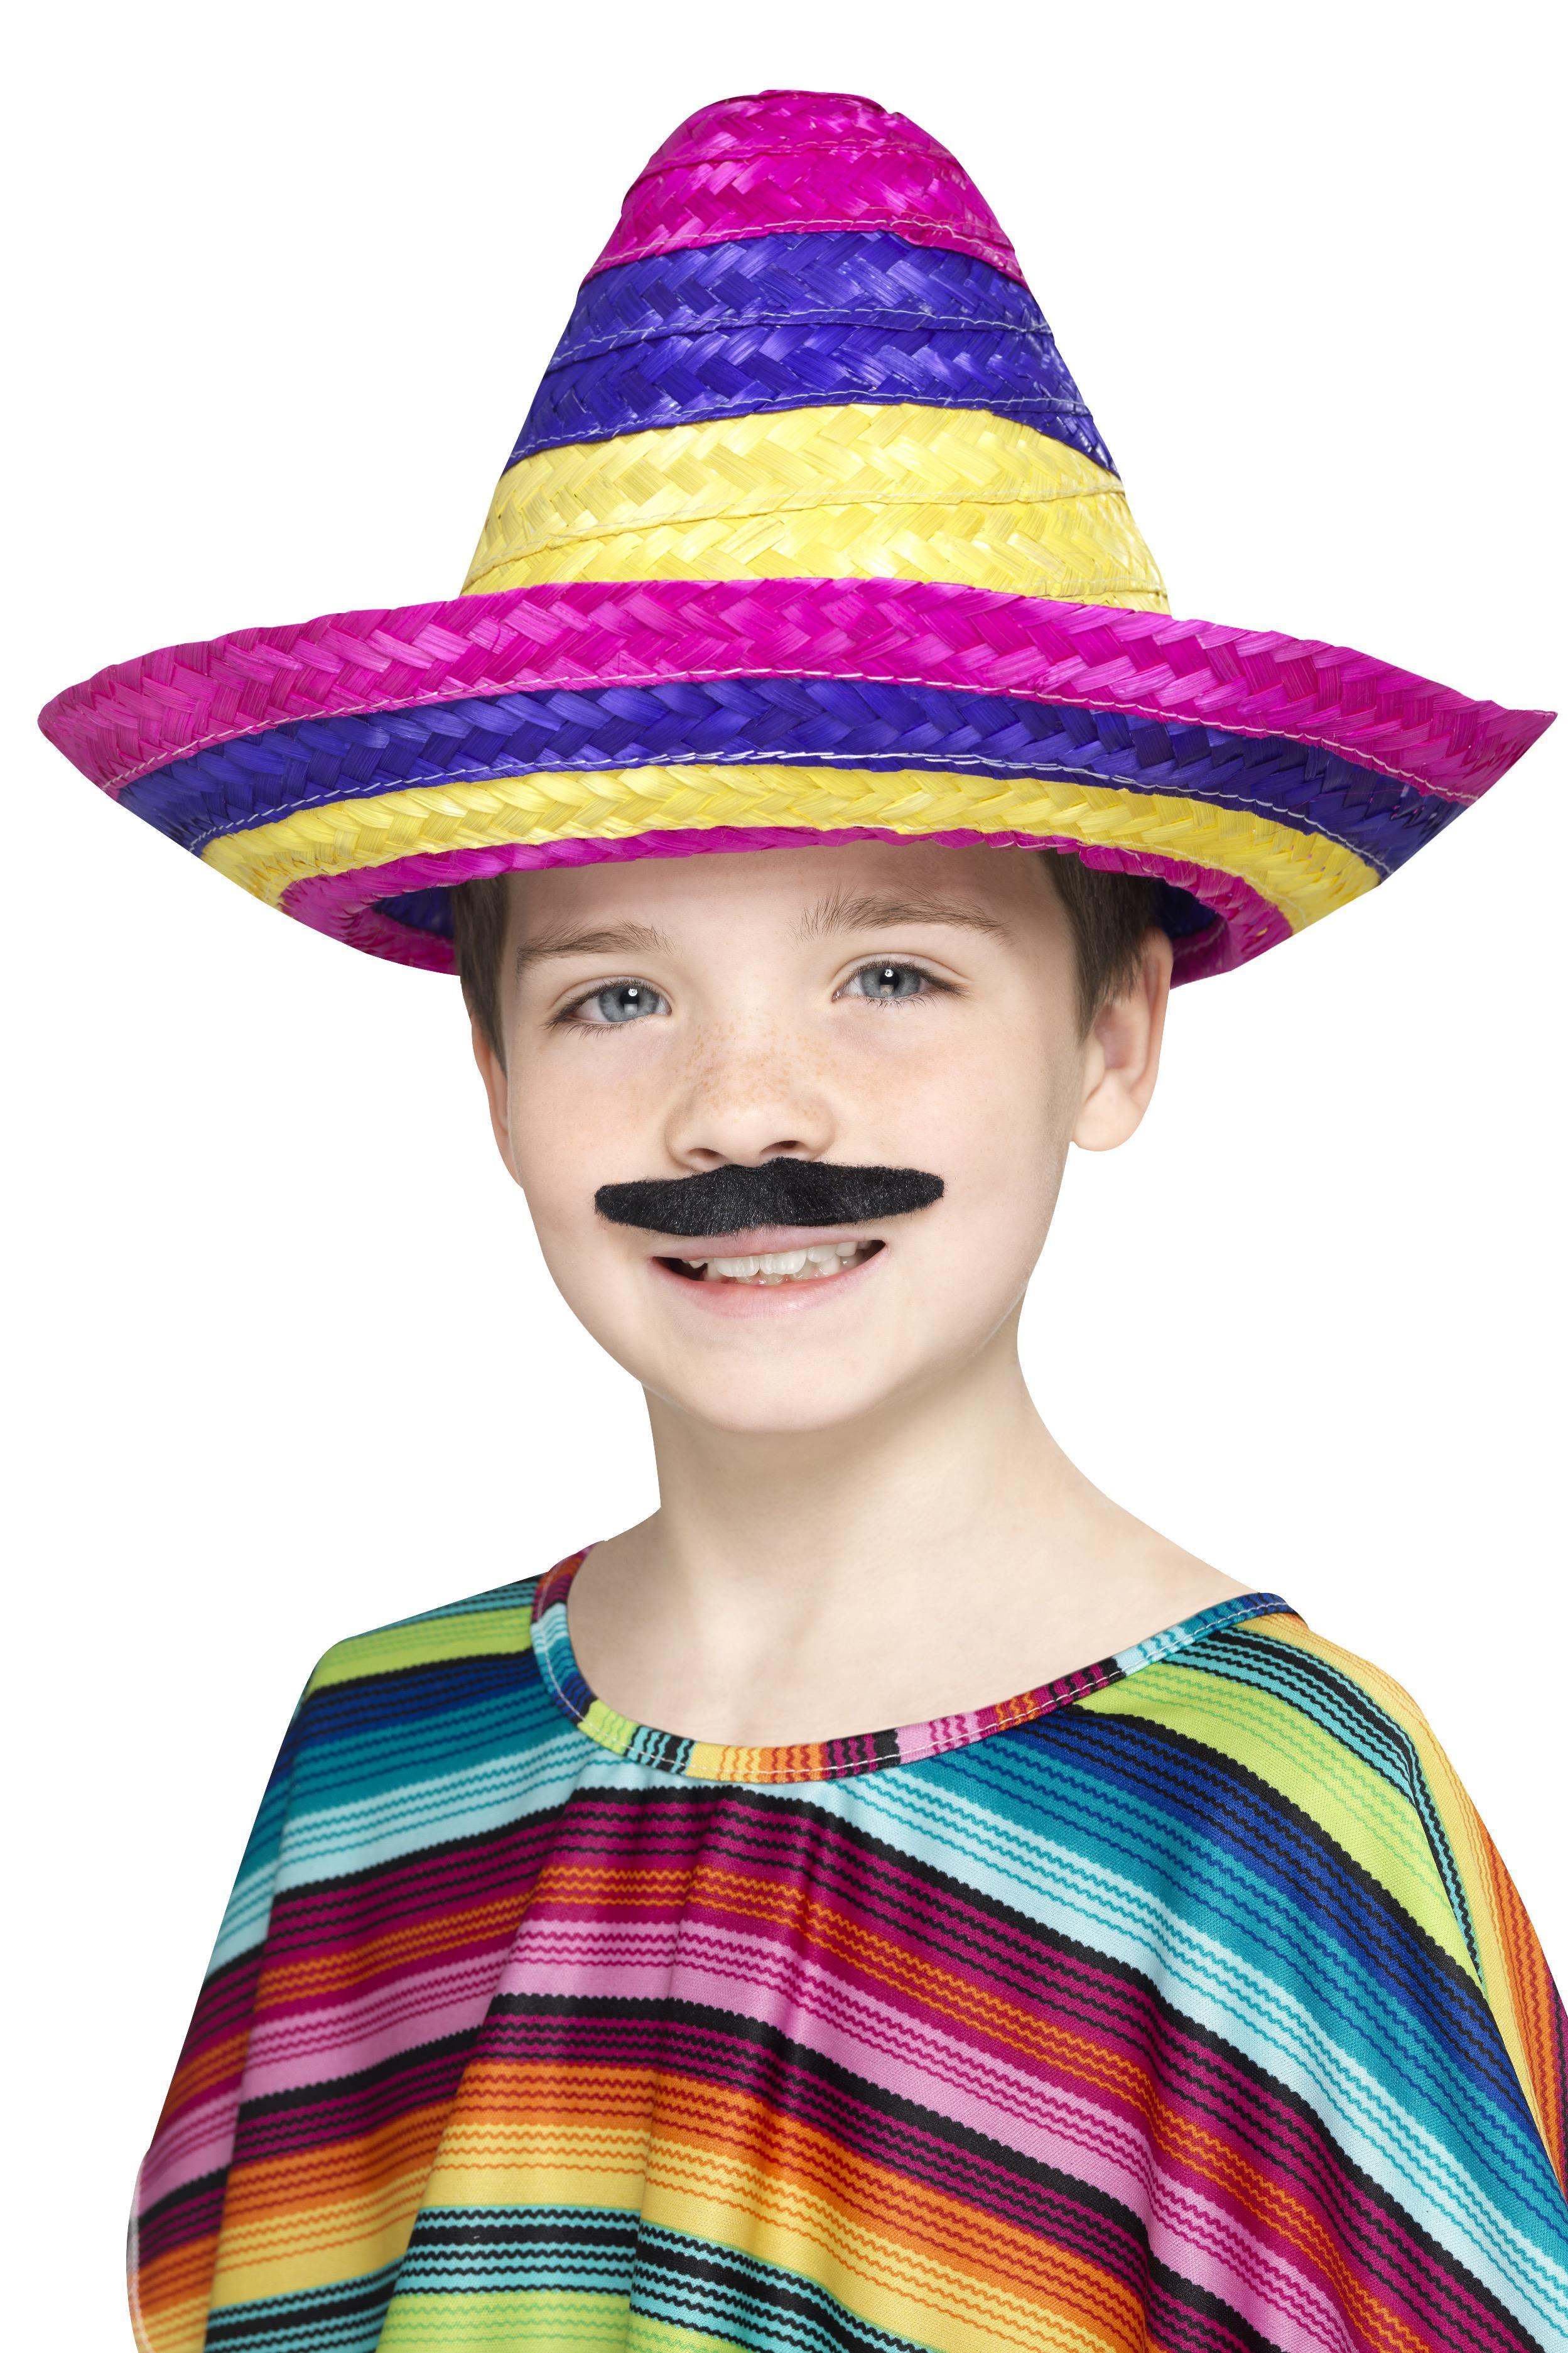 Kids Sombrero Hat